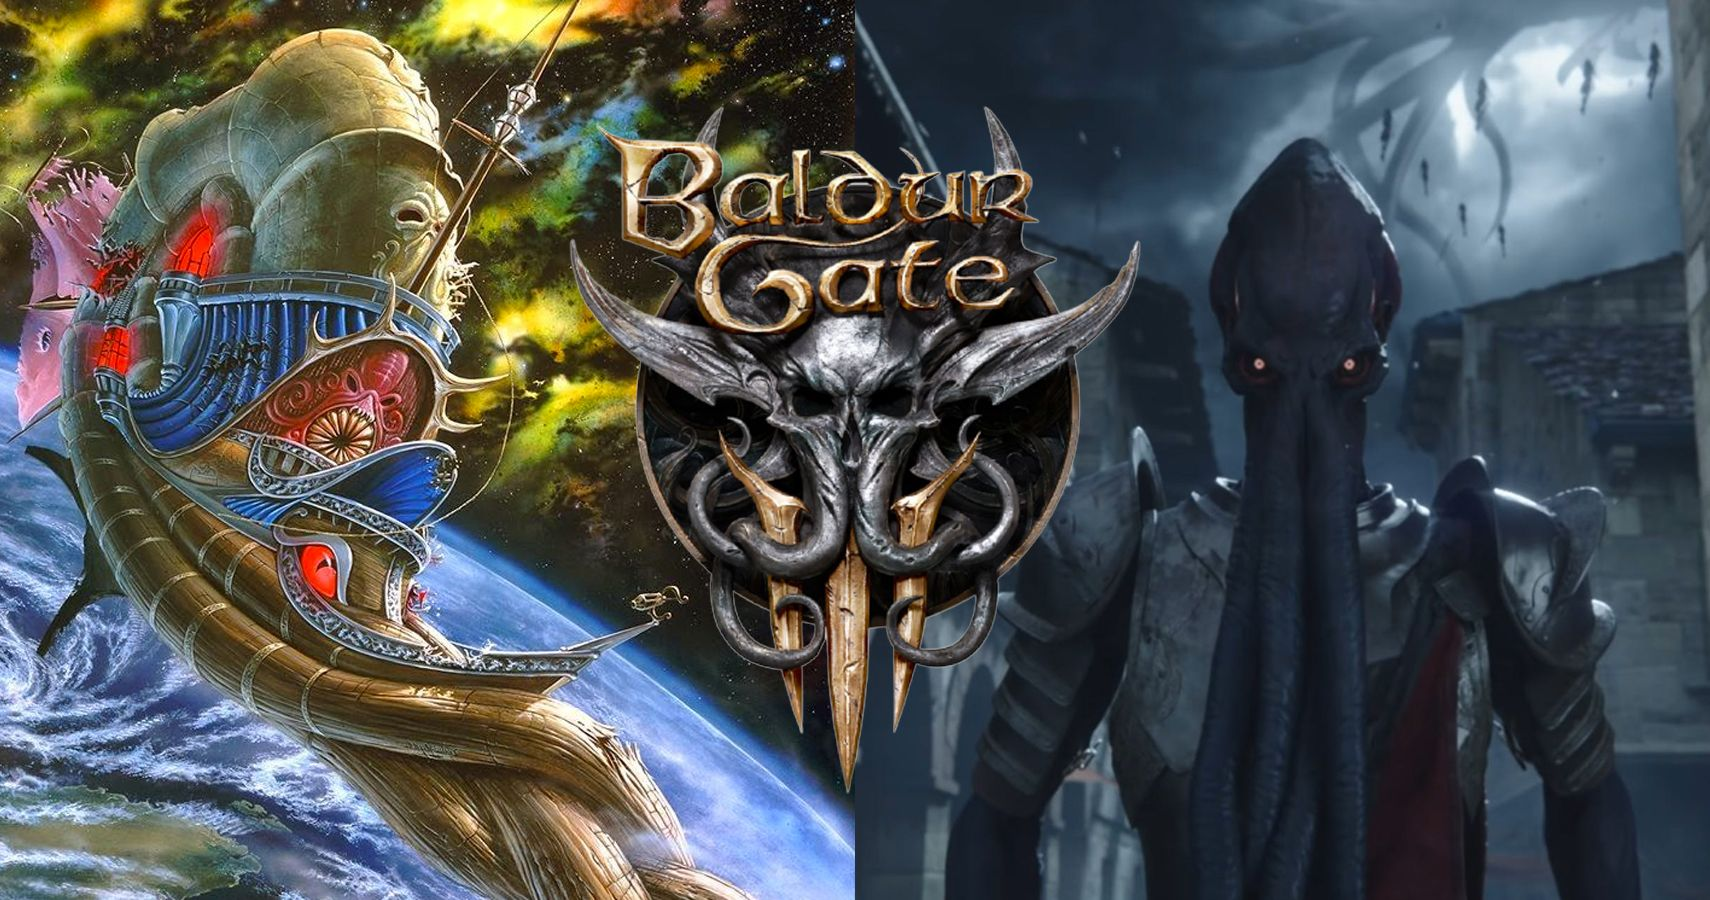 Baldur S Gate 3 Trailer Might Be Hinting At A Return To